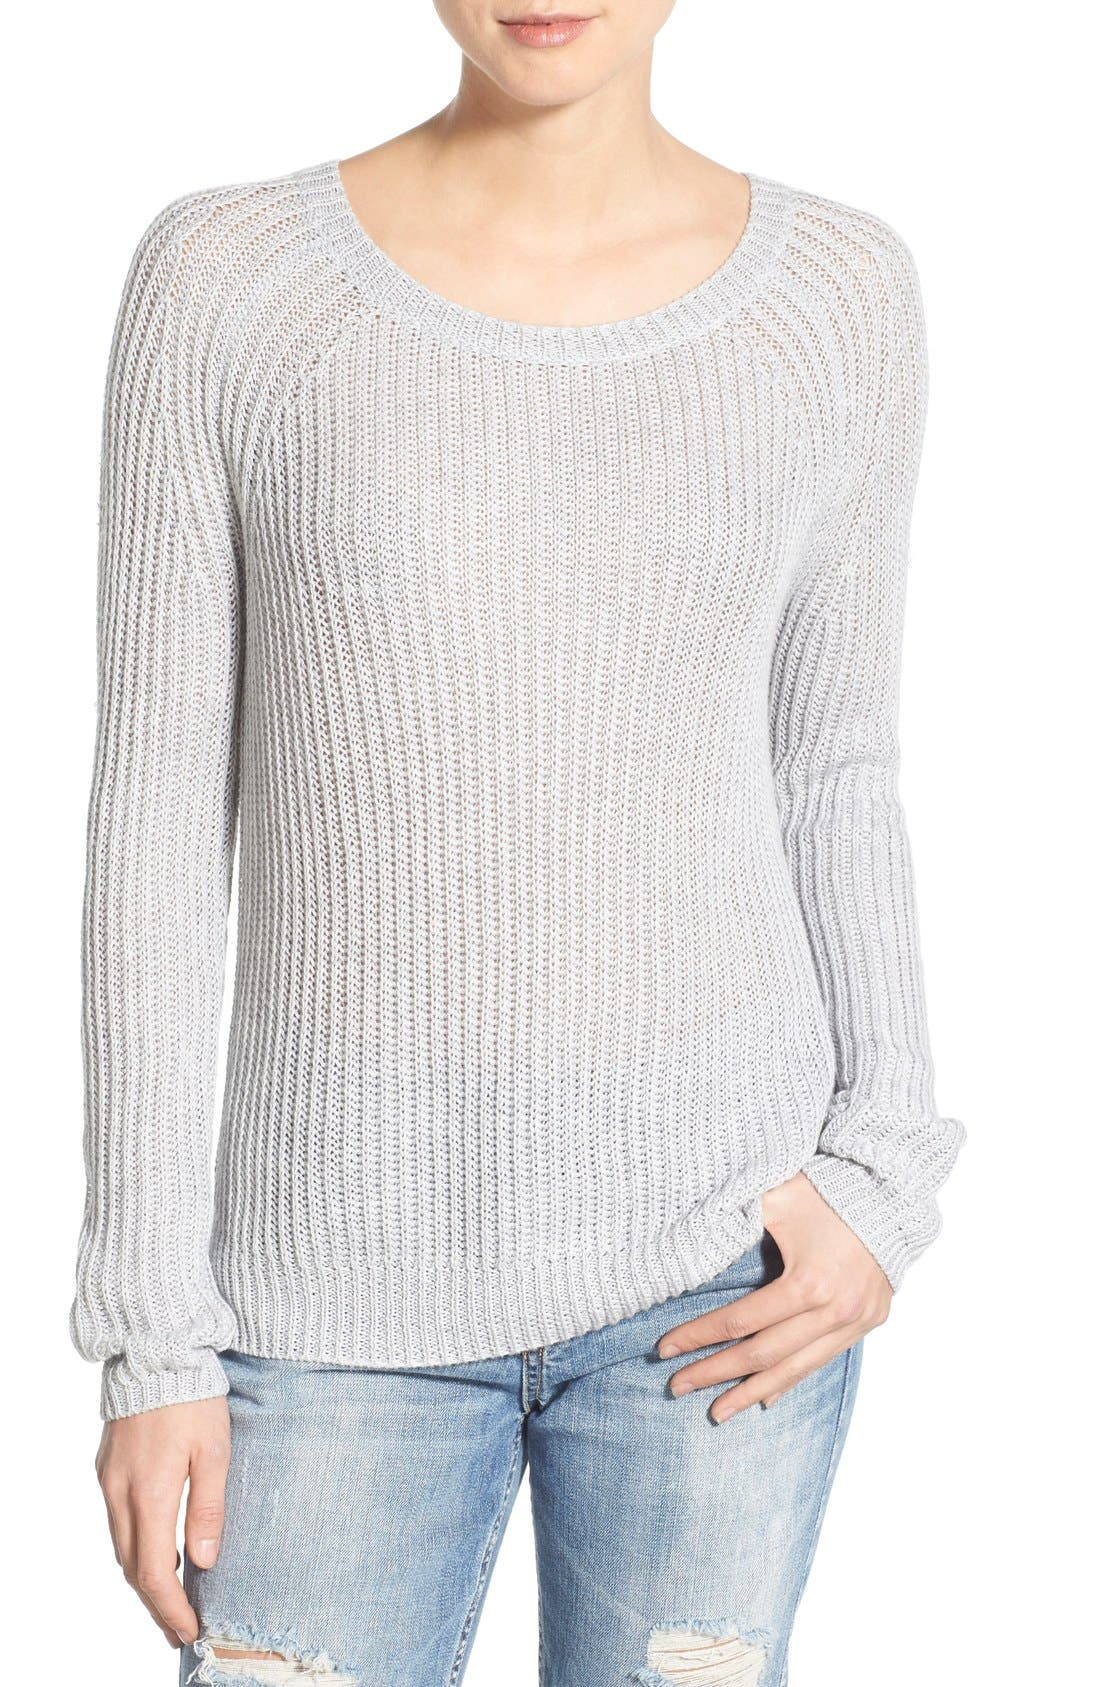 Main Image - Rails 'Willow' Knit Pullover